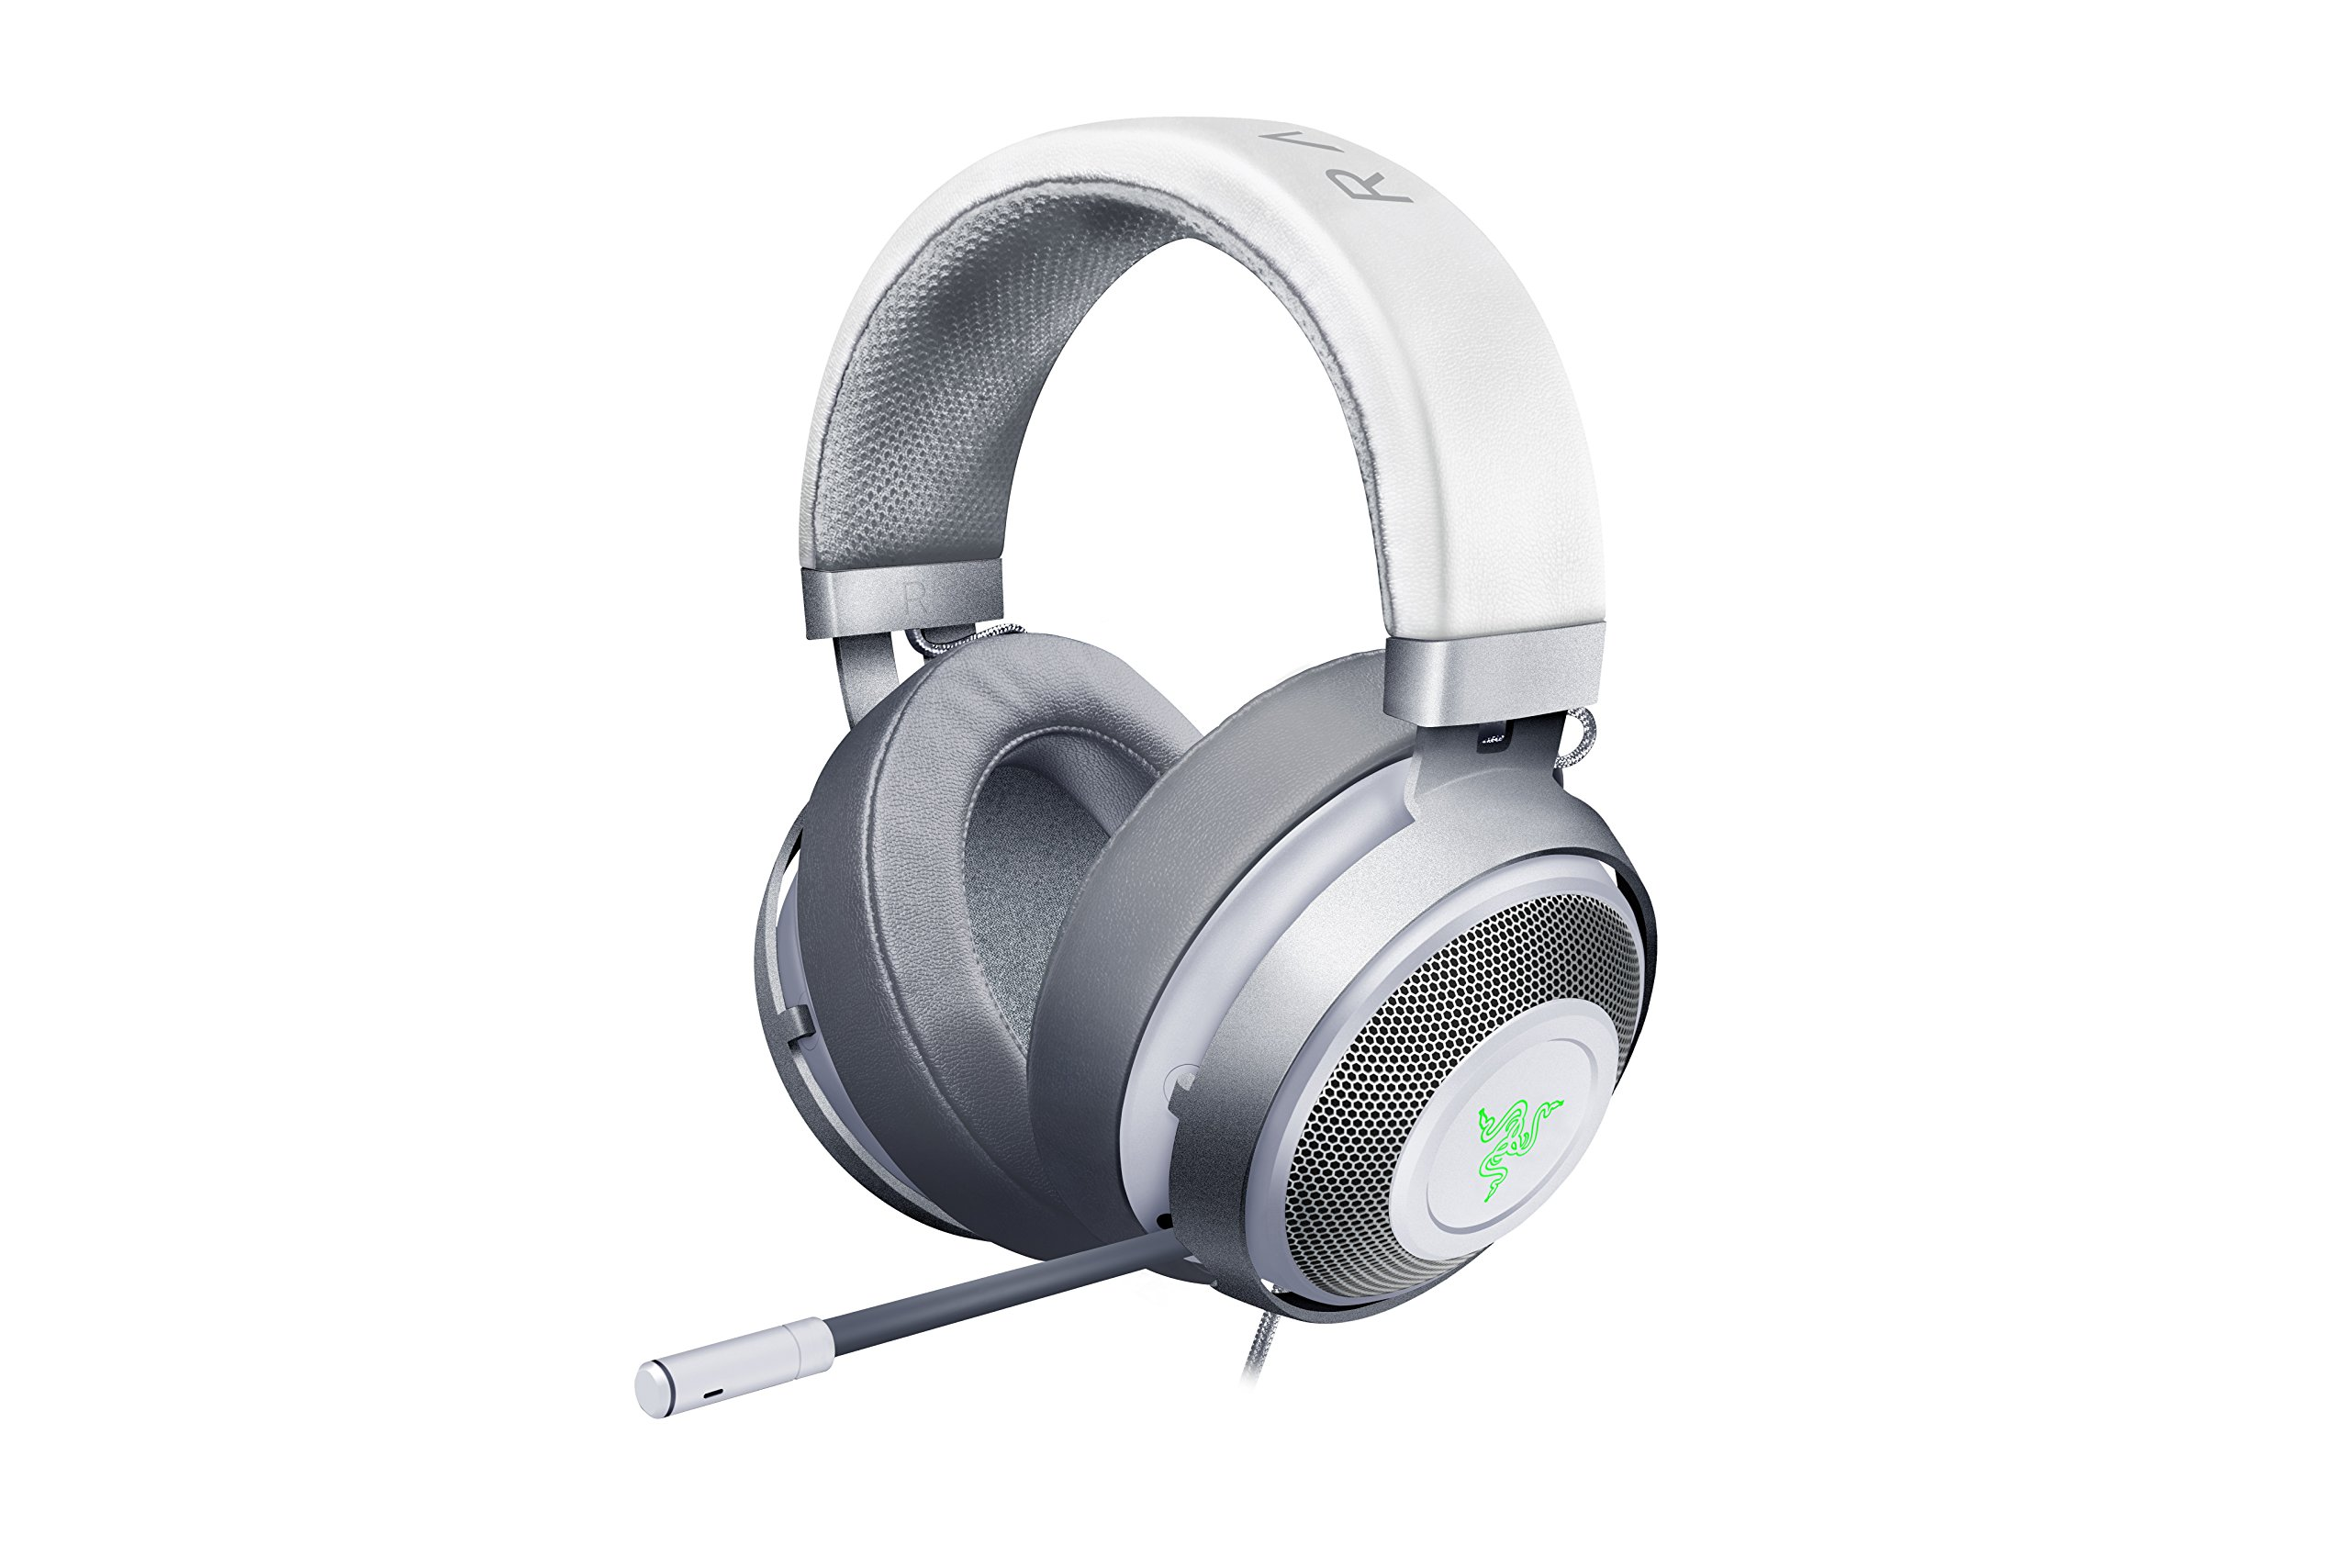 Gaming Headset Razer Kraken Pro V2 for PC PS4 Xbox One Switch /& Mobile Devices